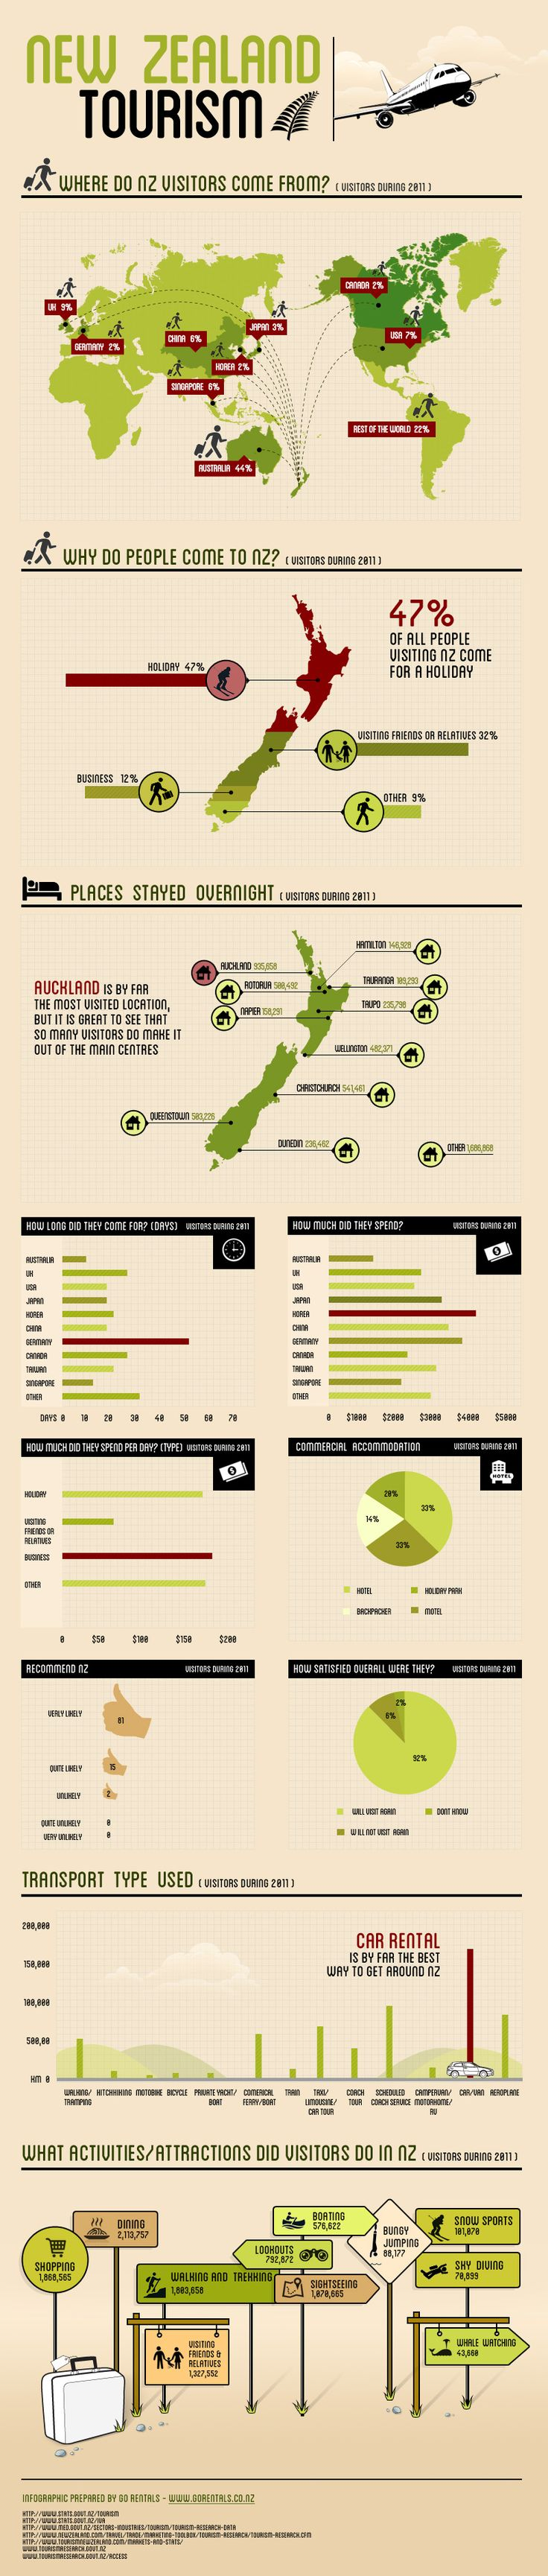 New Zealand Travel Statistics -2011